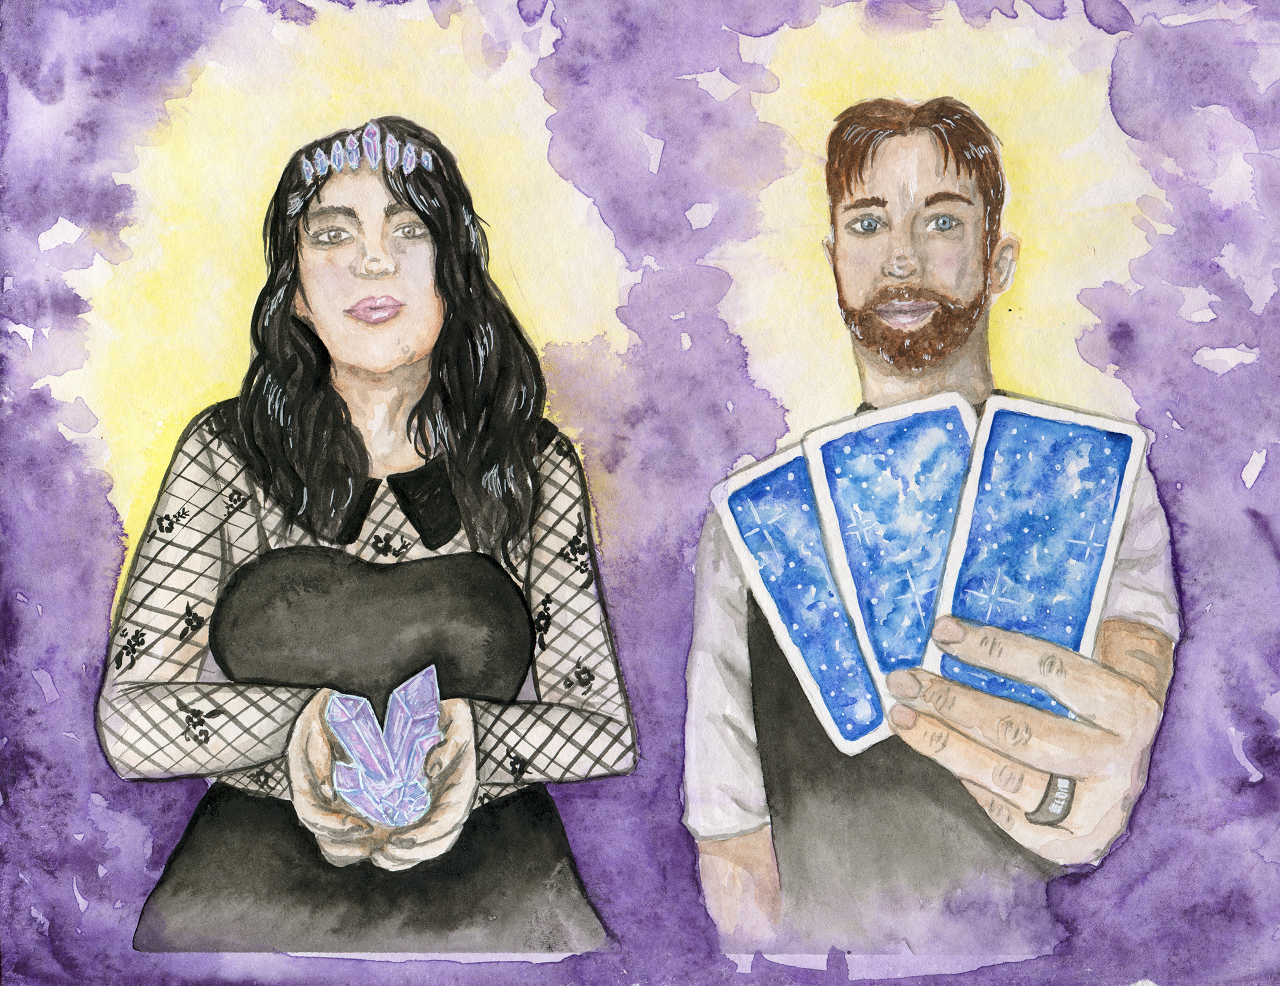 The Hermit and The High Priestess